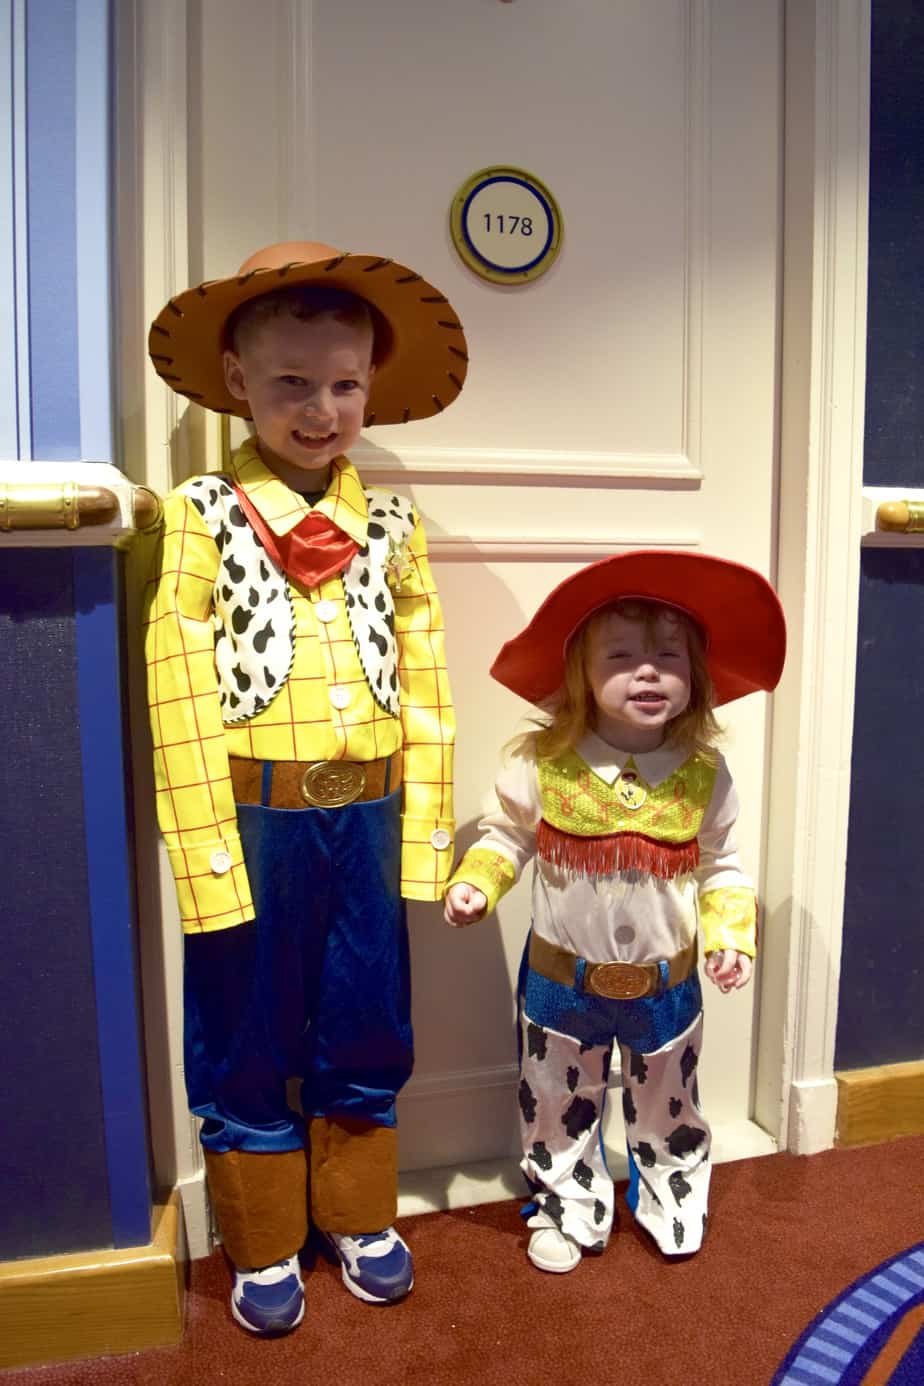 B and W all ready for Buffalo Bill s Wild west show in Woody and Jessie  outfits 01950cd62baf